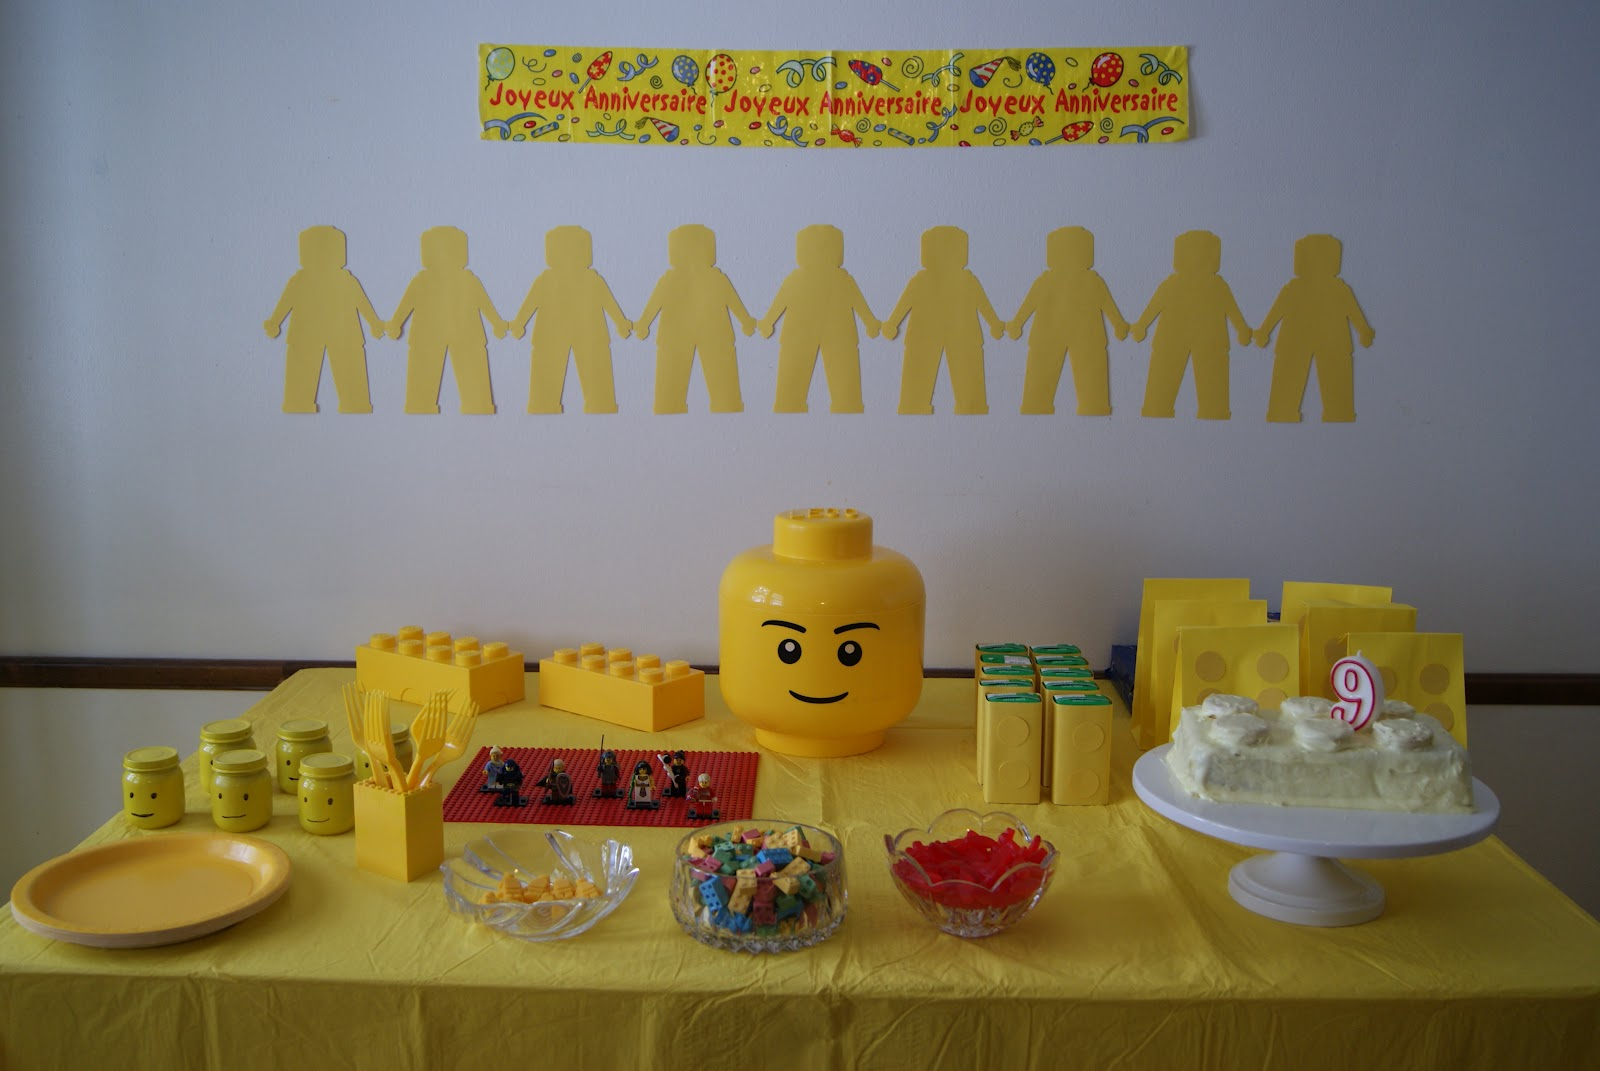 Birthday Party Boy 6 Yr Old Ideas Image Inspiration of Cake and